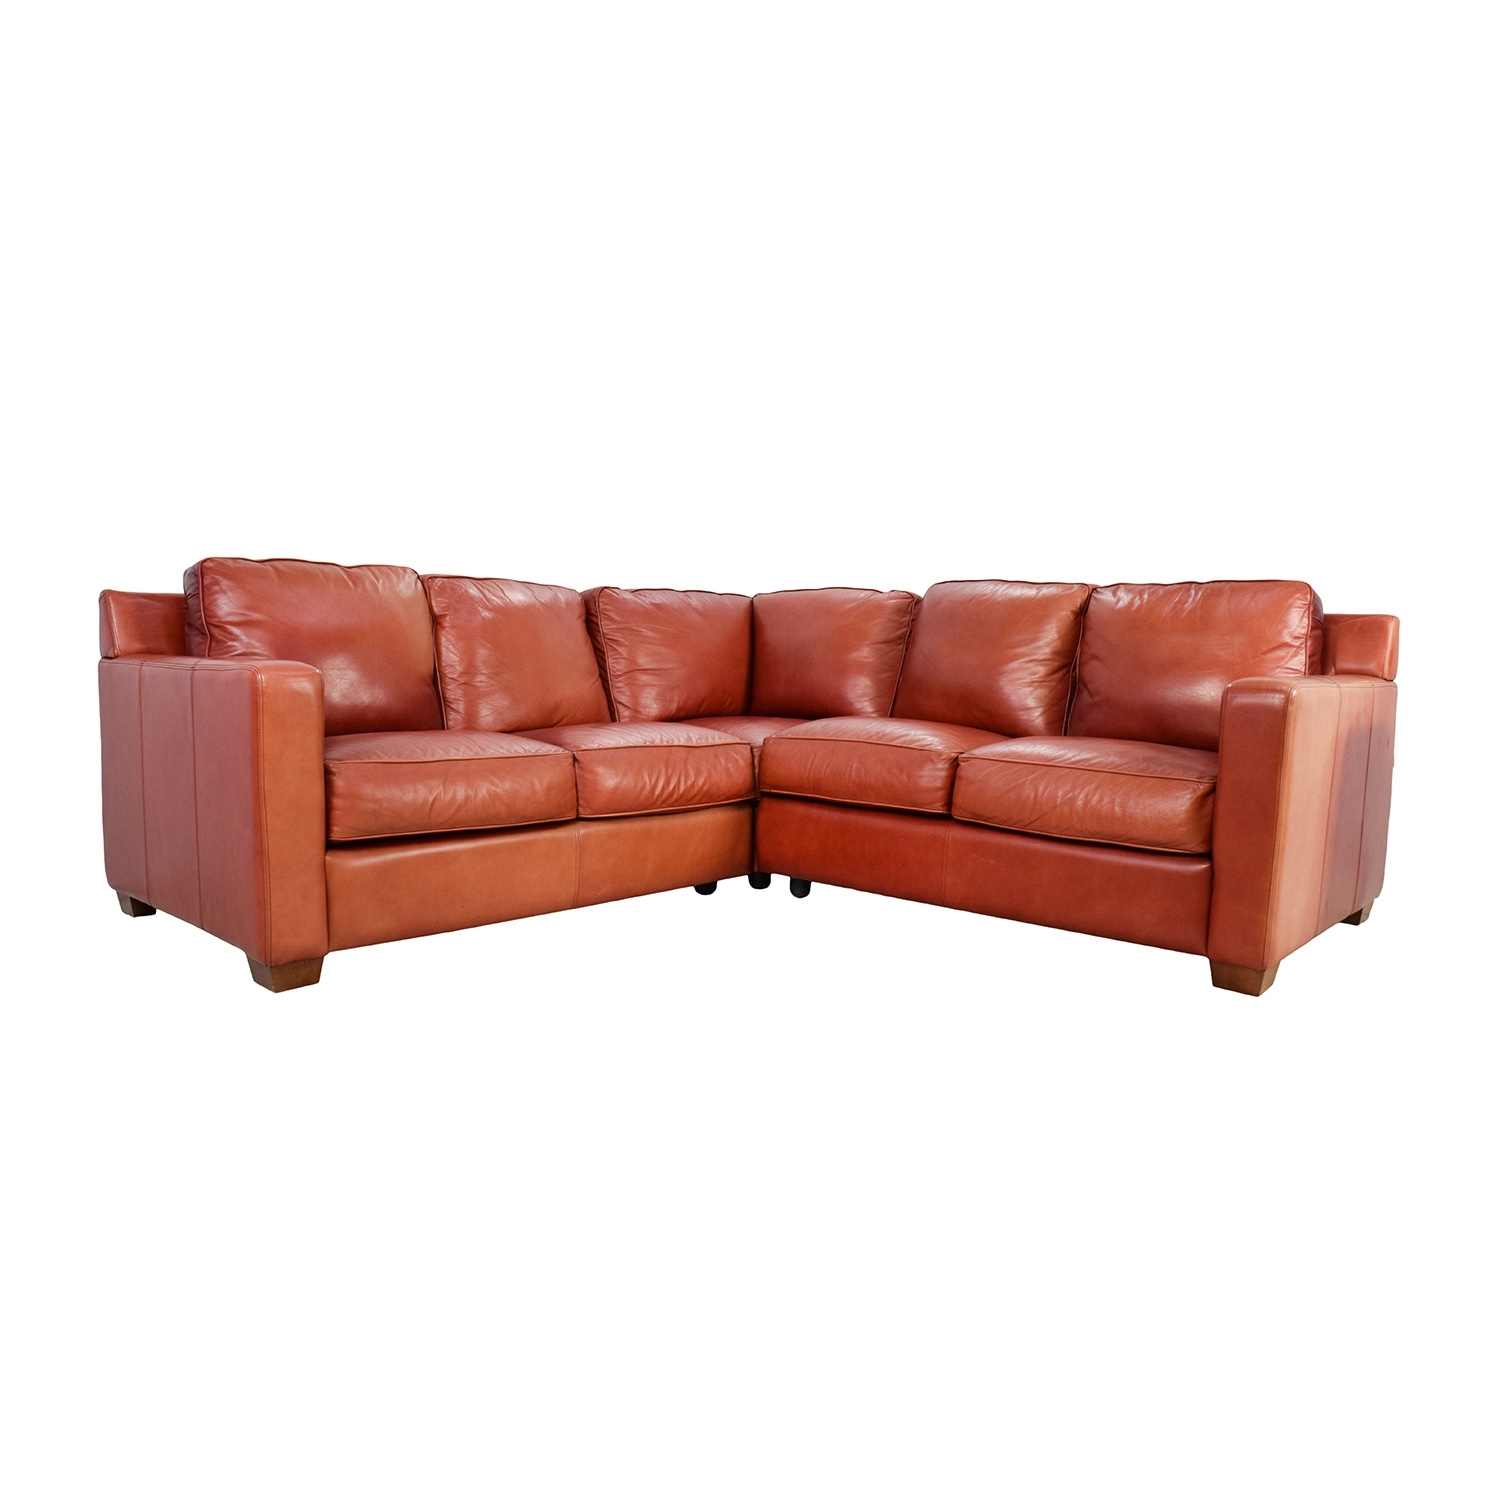 68% Off – Thomasville Thomasville Red Leather Sectional / Sofas Regarding Thomasville Sectional Sofas (Gallery 1 of 10)